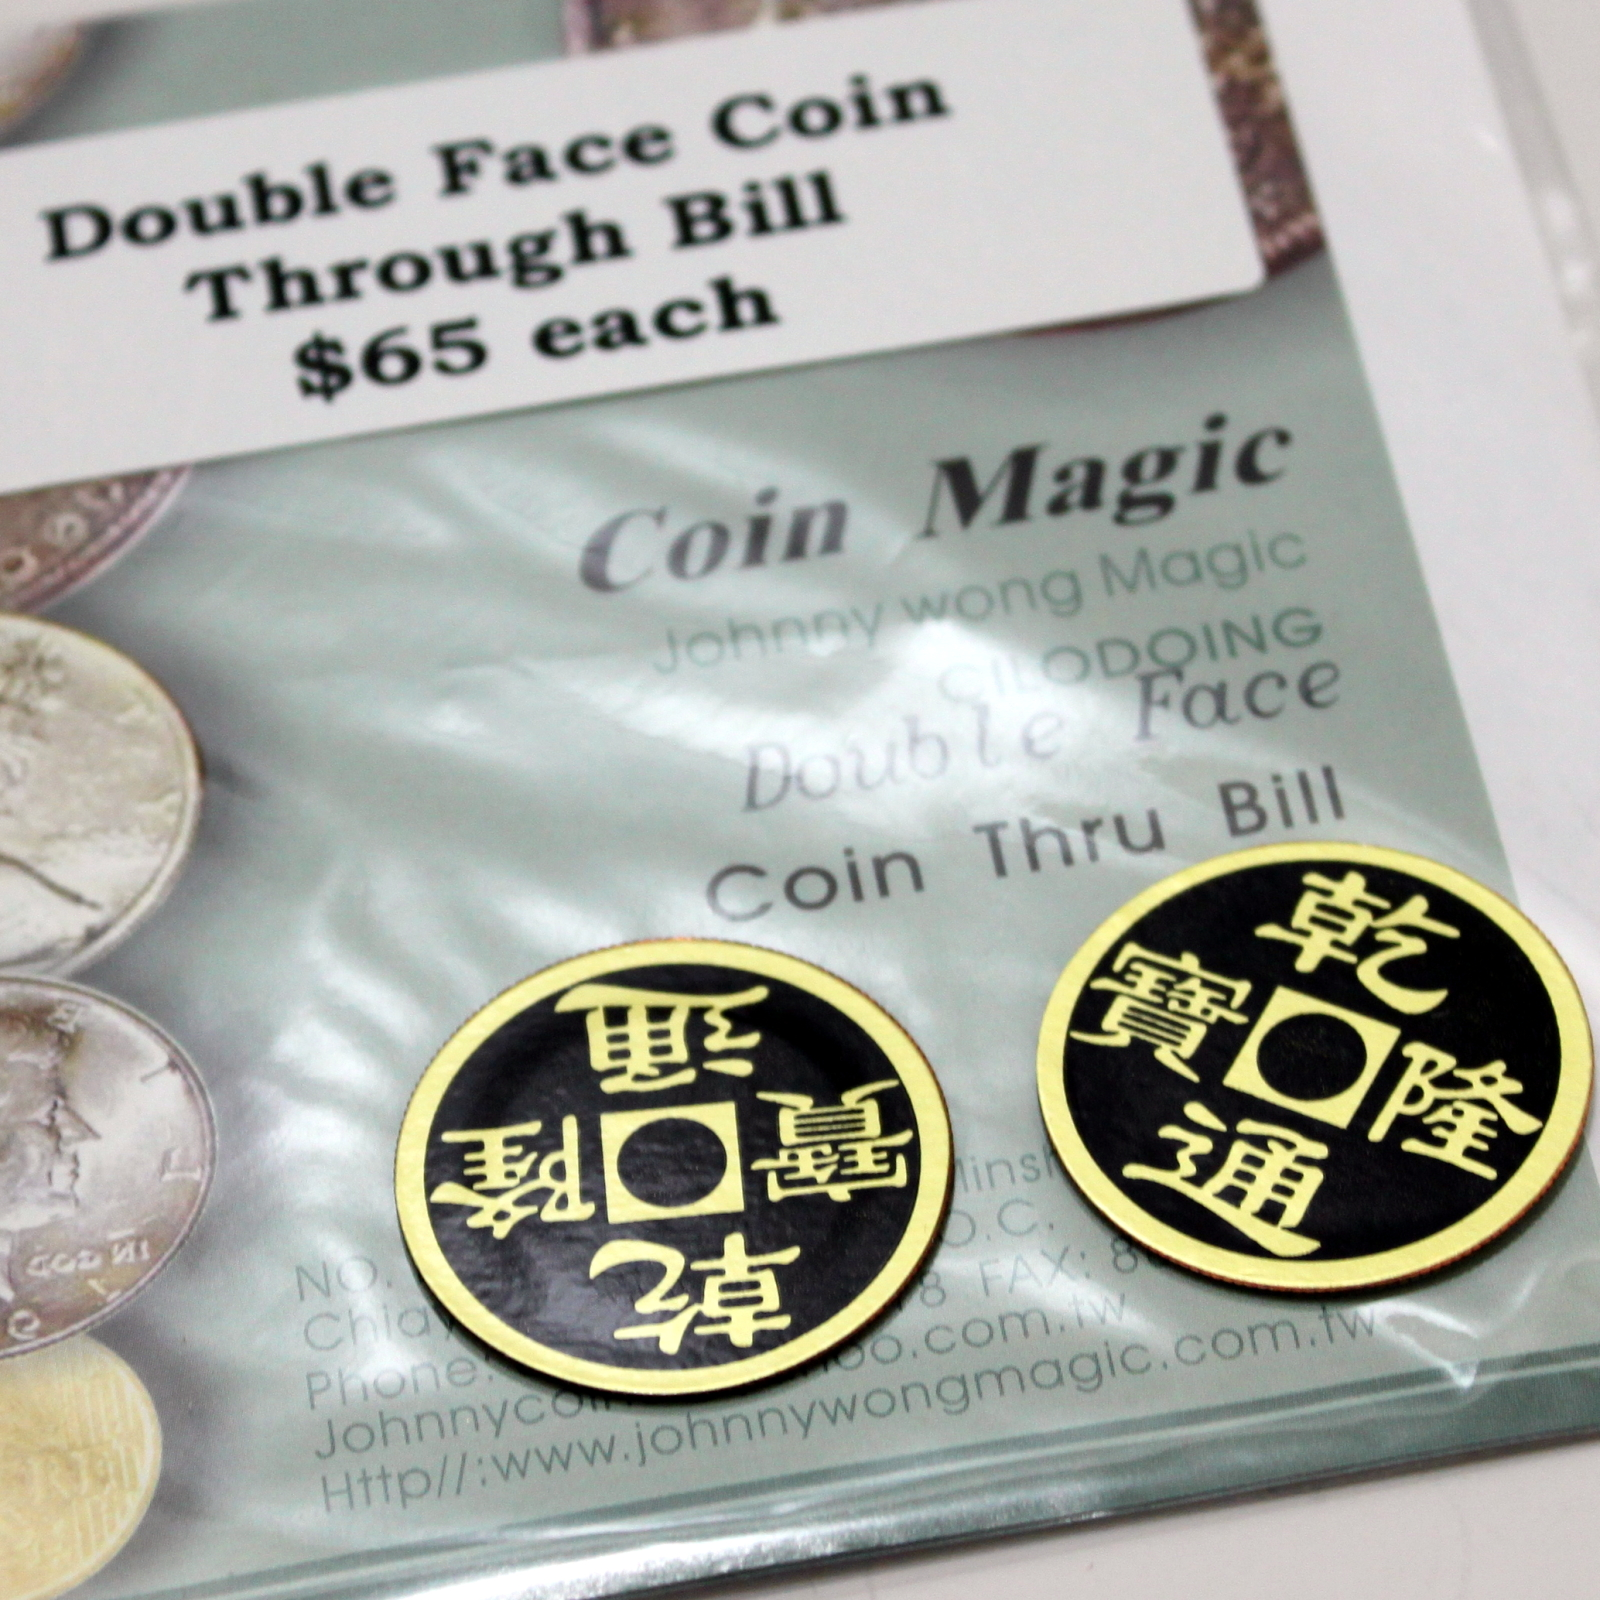 Double Face Coin Through Bill by Johnny Wong